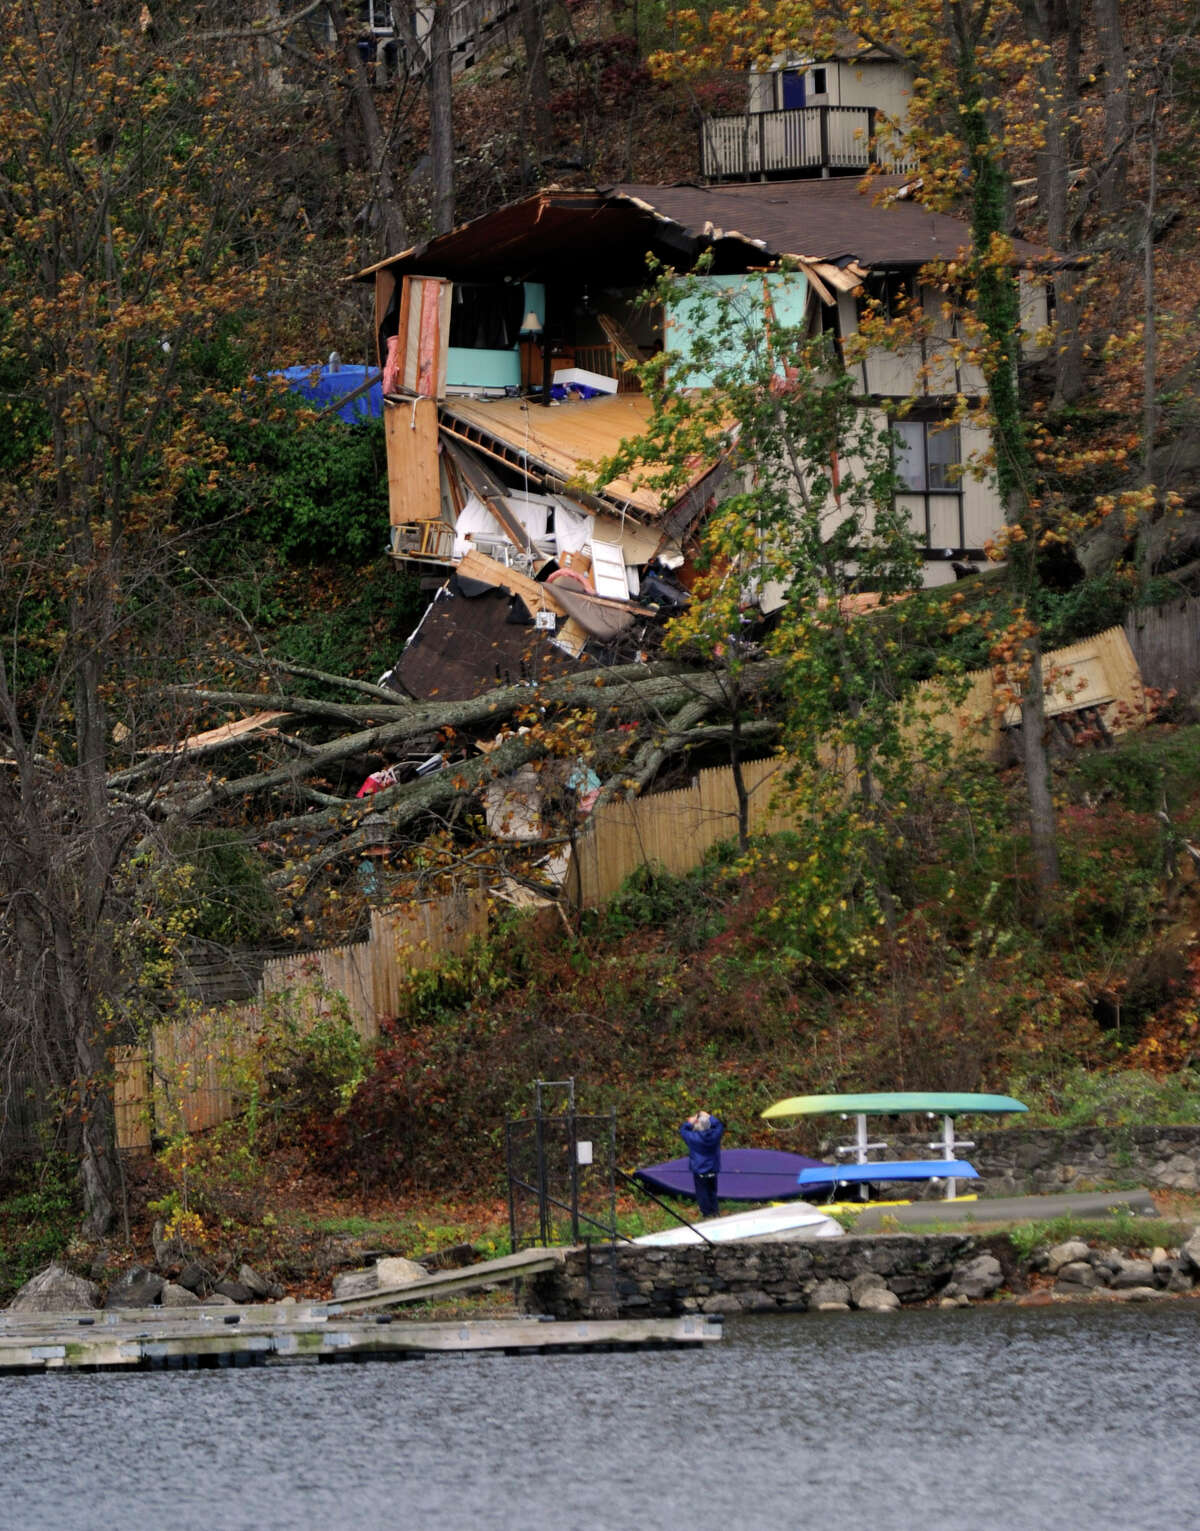 This house overlooking Candlewood Lake near the Pleasant Acres Beach in Danbury, Conn. was heavily damaged reportedly by falling trees from the high winds of Hurricane Sandy, Tuesday, Oct. 30, 2012.